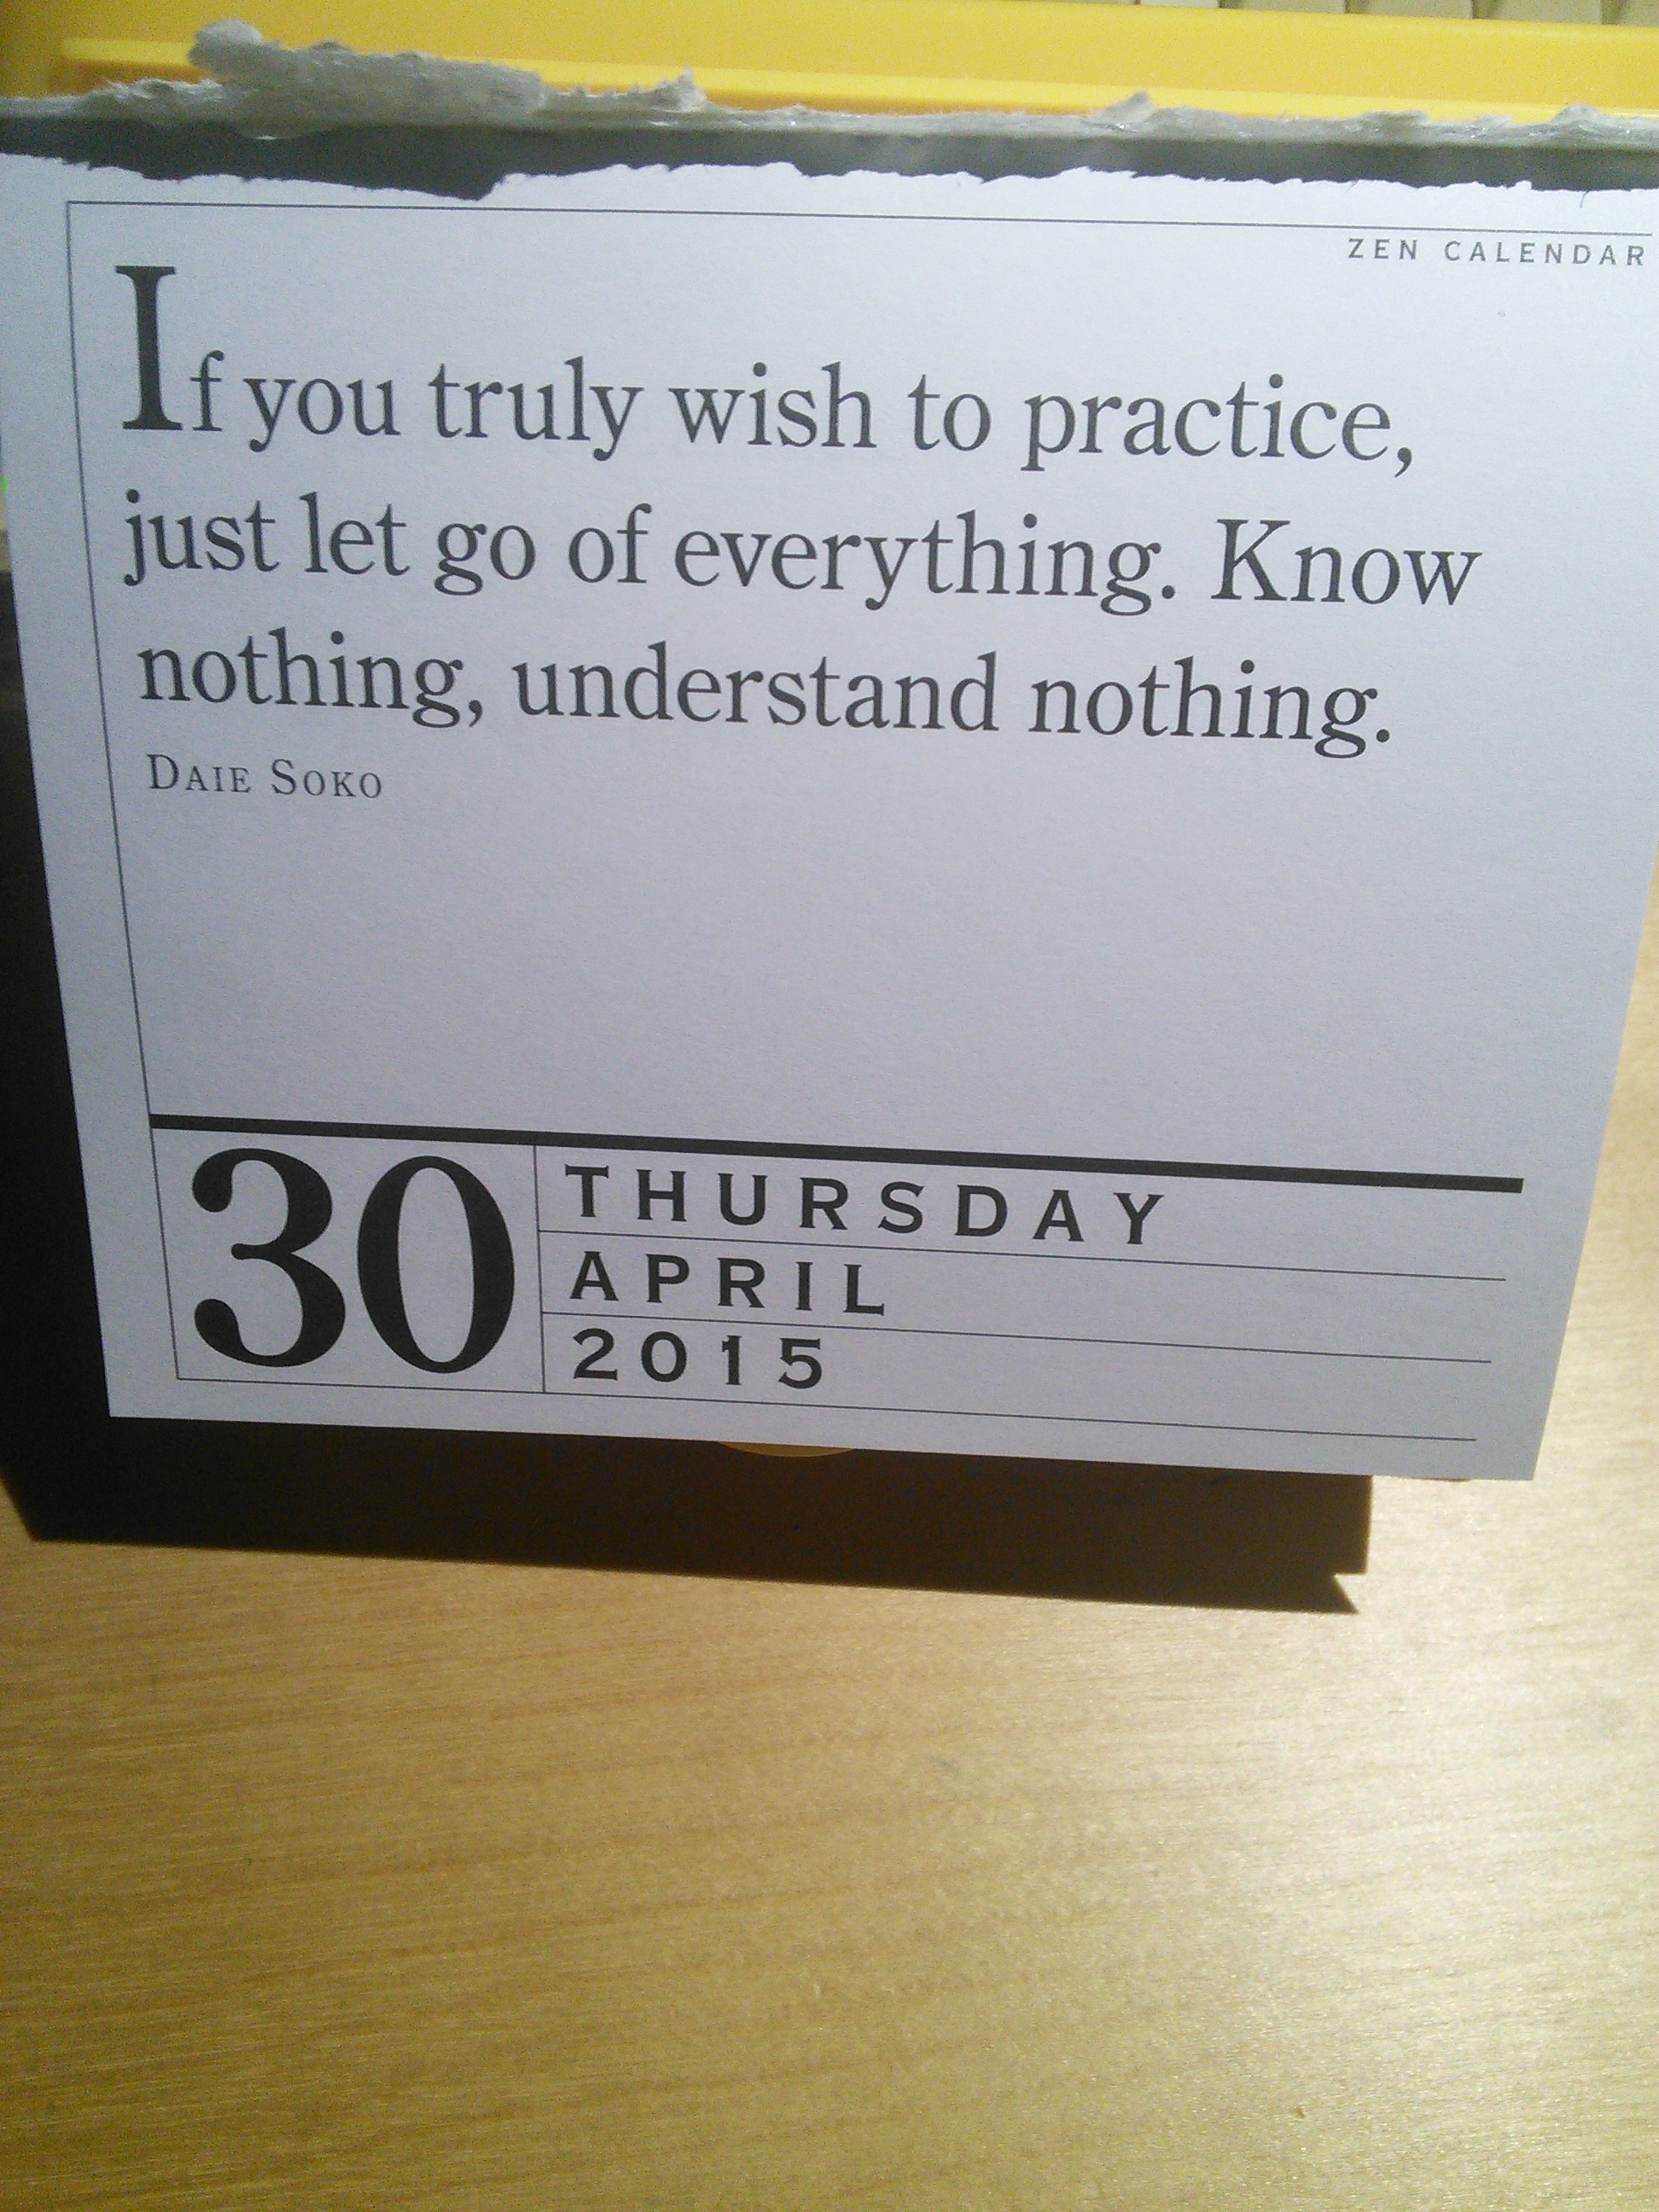 """image: """"If you truly wish to practice, just let go of everything. Know nothing, understand nothing."""" Daie Soko, from the Zen Calendar entry for Thursday, April 30, 2015"""